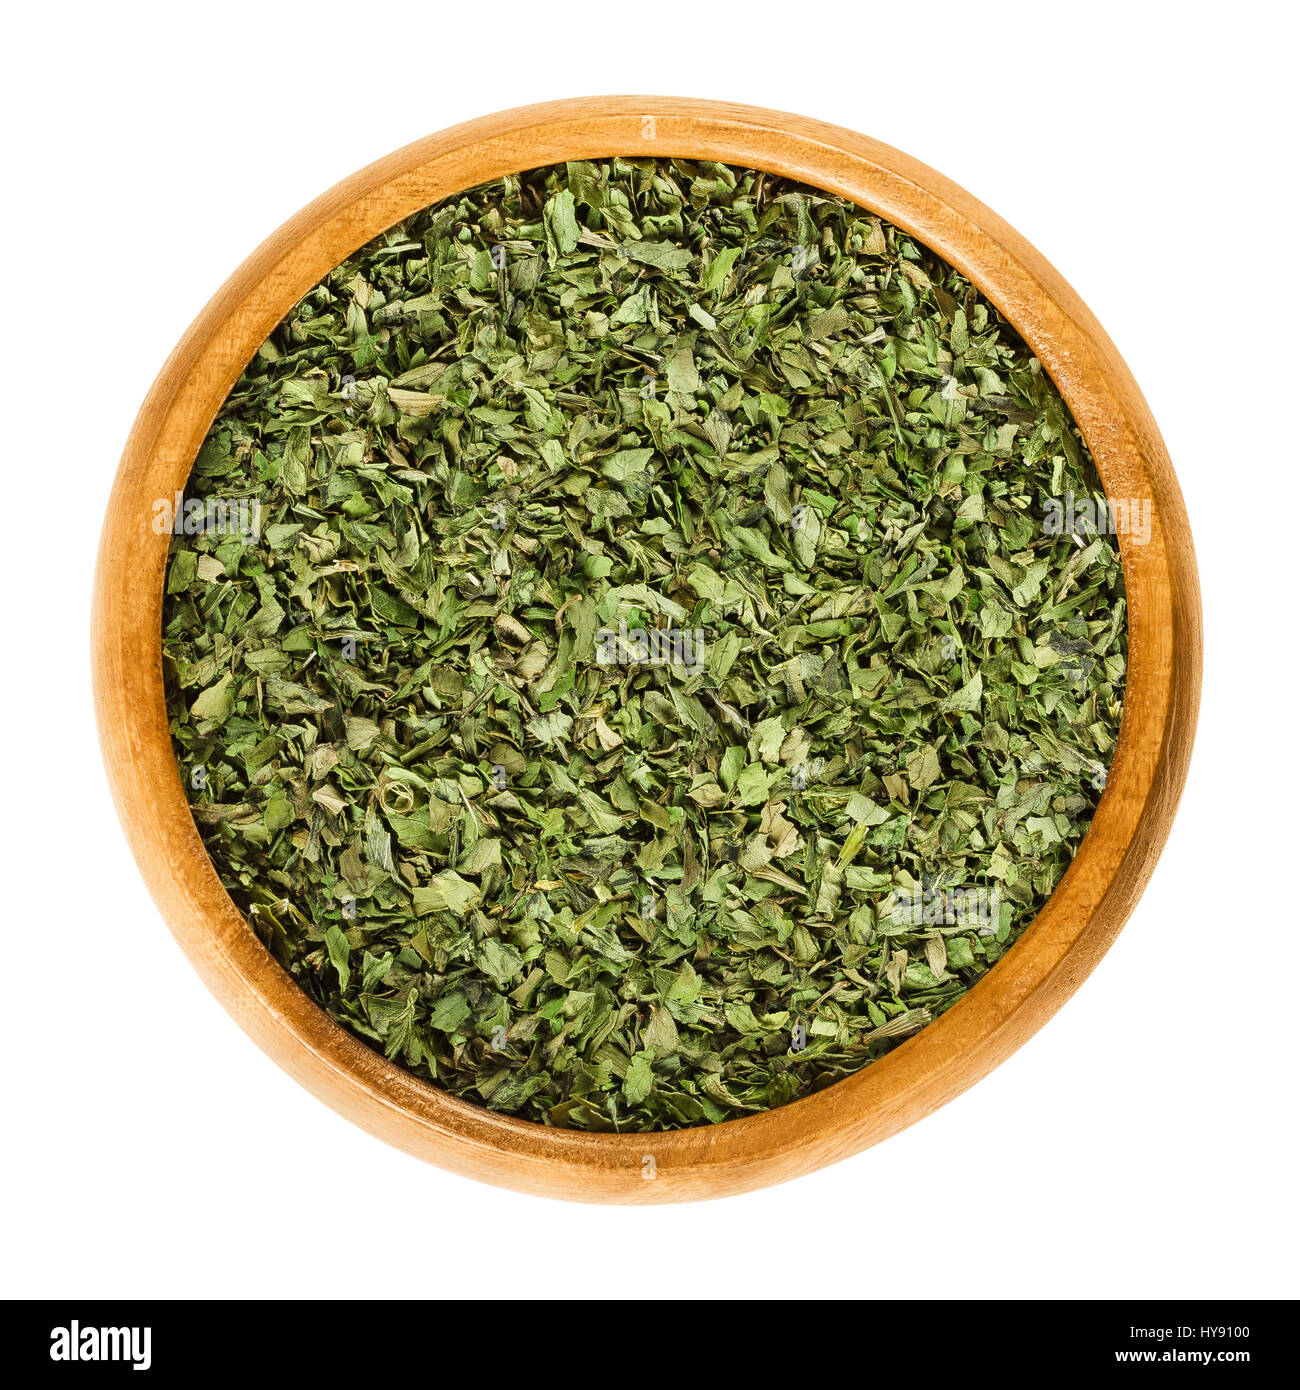 Dried and grated lovage leaves in wooden bowl. Edible green herb and vegetable, used in salads and soups. Levisticum - Stock Image